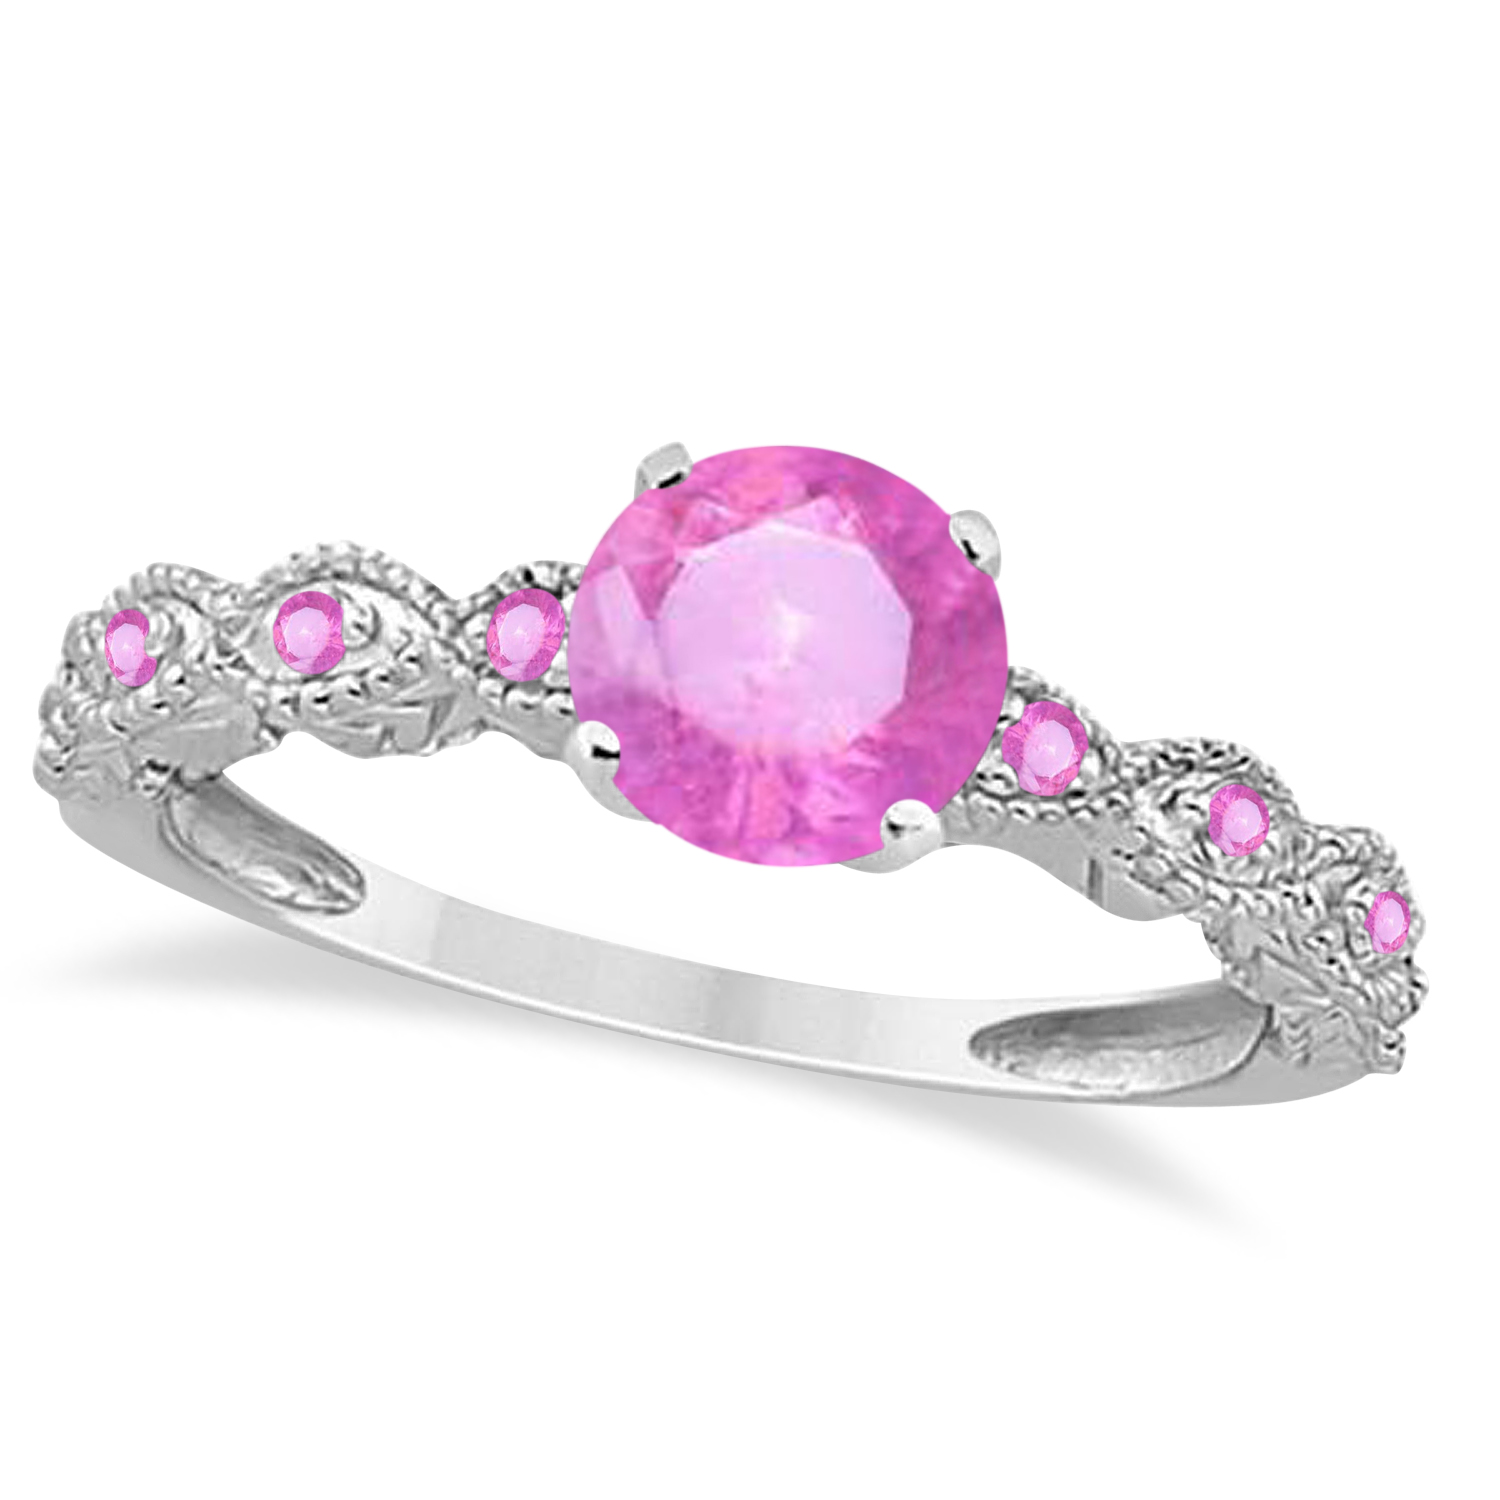 Vintage Pink Sapphire Engagement Ring Bridal Set 14k White Gold 1.36ct